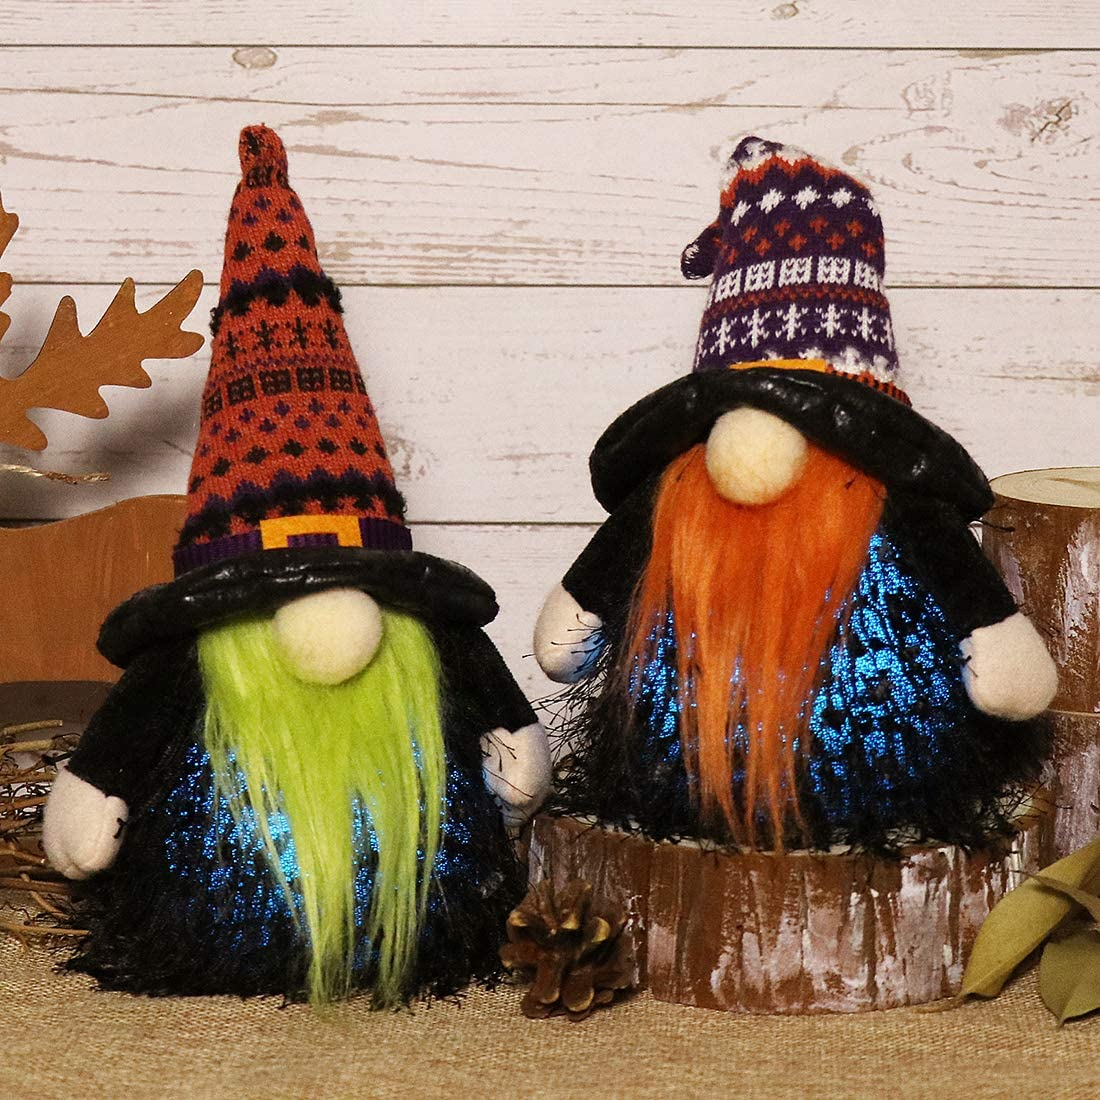 EDLDECCO Gnomes Set Light with Timer Holidays Fall Thanksgiving Halloween Decor 9 Inches Set of 2 Nisse Swedish Nordic Tomte with Wizard Witch Hat Home Party Decorations(Orange & Purple)